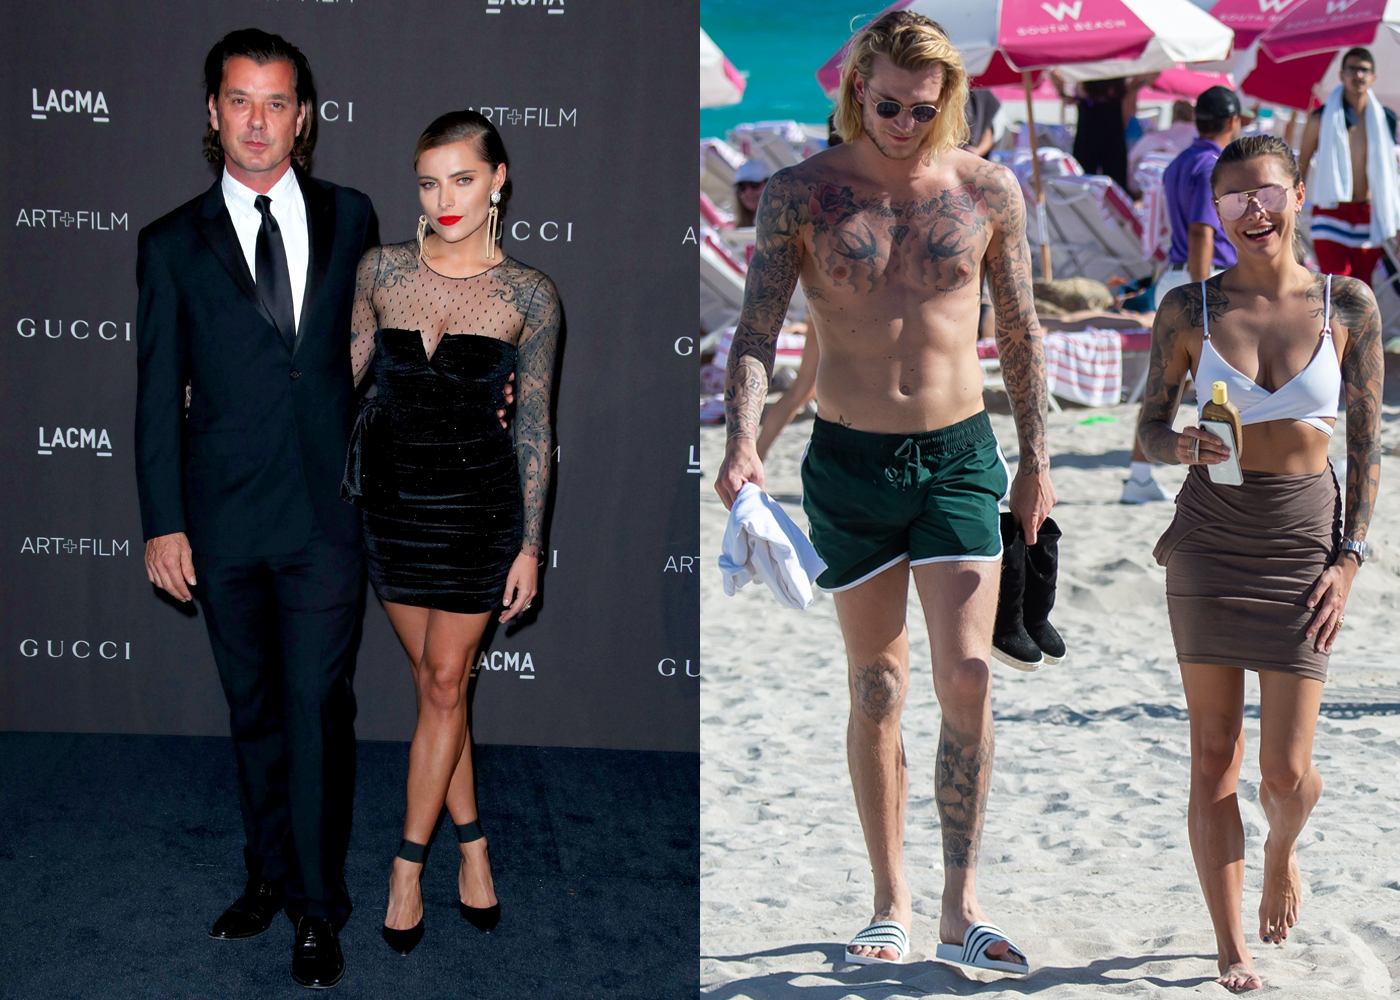 Gavin Rossdale and Sophia Thomalla attend the LACMA Art + Film Gala in Los Angeles on Nov. 3, 2018. Loris Karius and Sophia Thomalla walk on the beach in Miami on Dec. 30, 2018.